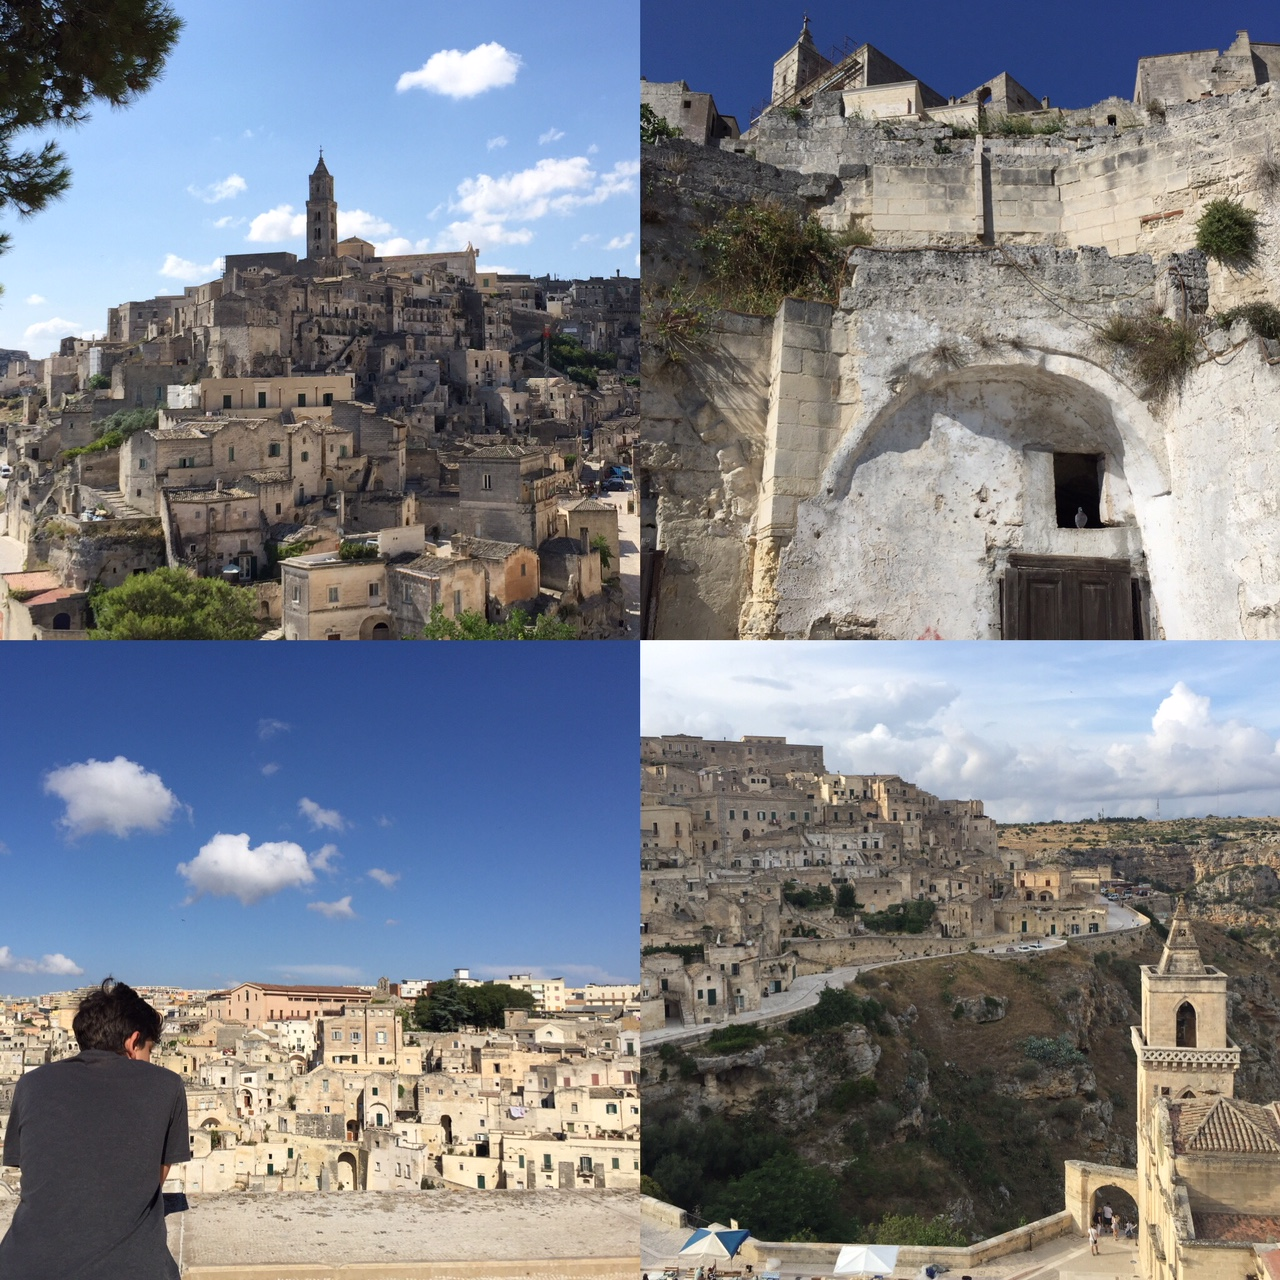 Matera (300 km from Pizzo)